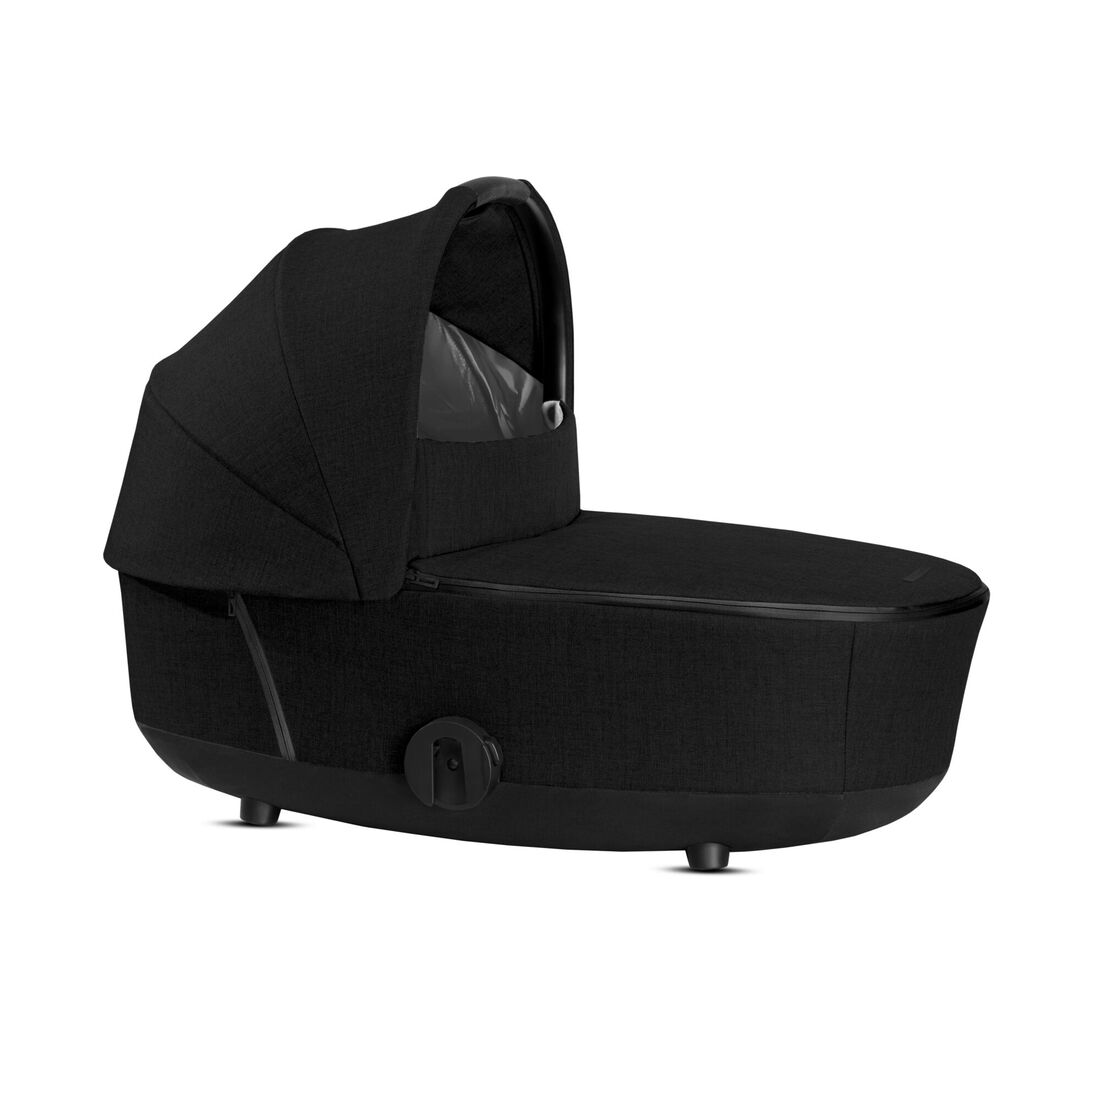 CYBEX Mios Lux Carry Cot - Stardust Black Plus in Stardust Black Plus large image number 1